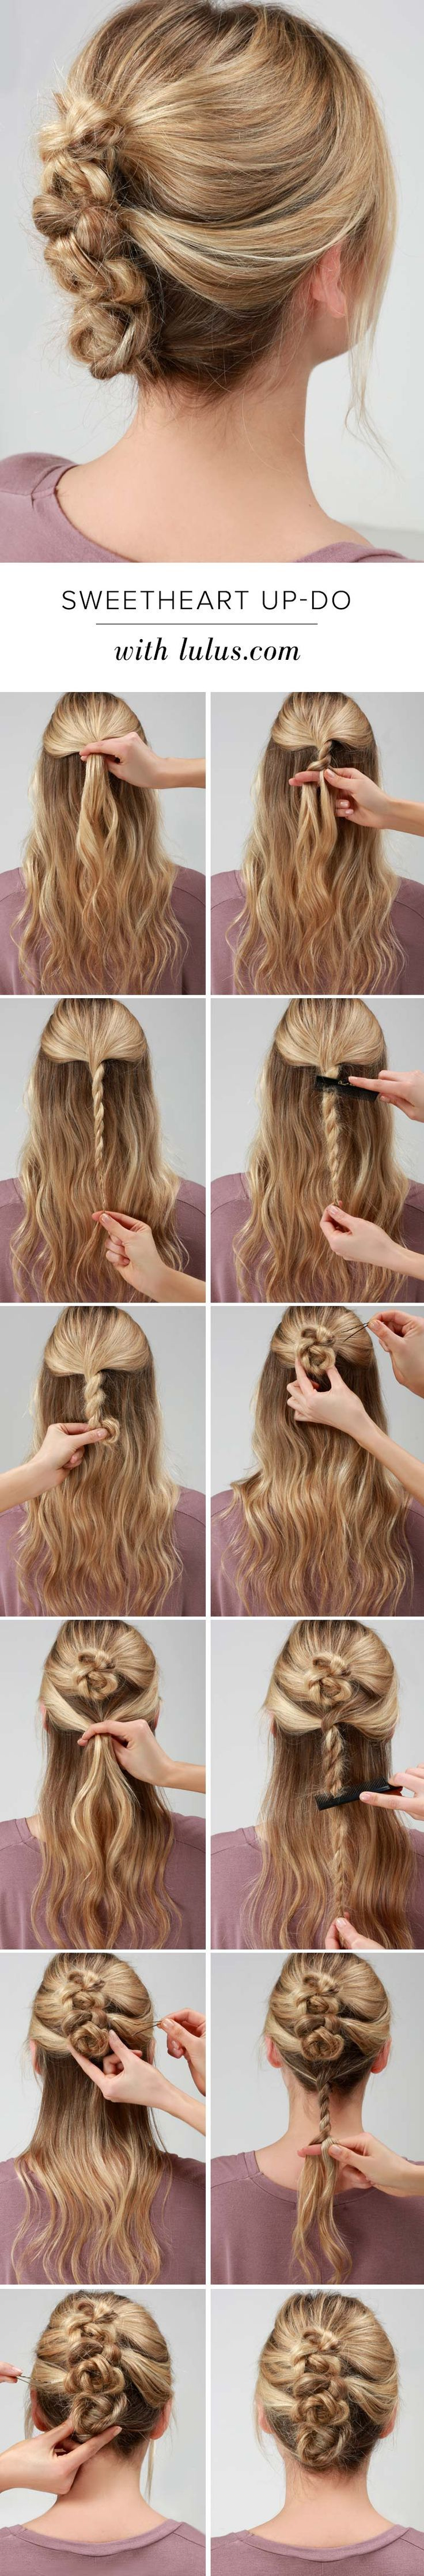 Prime 1000 Ideas About Waitress Hairstyles On Pinterest Curl Hair Short Hairstyles For Black Women Fulllsitofus